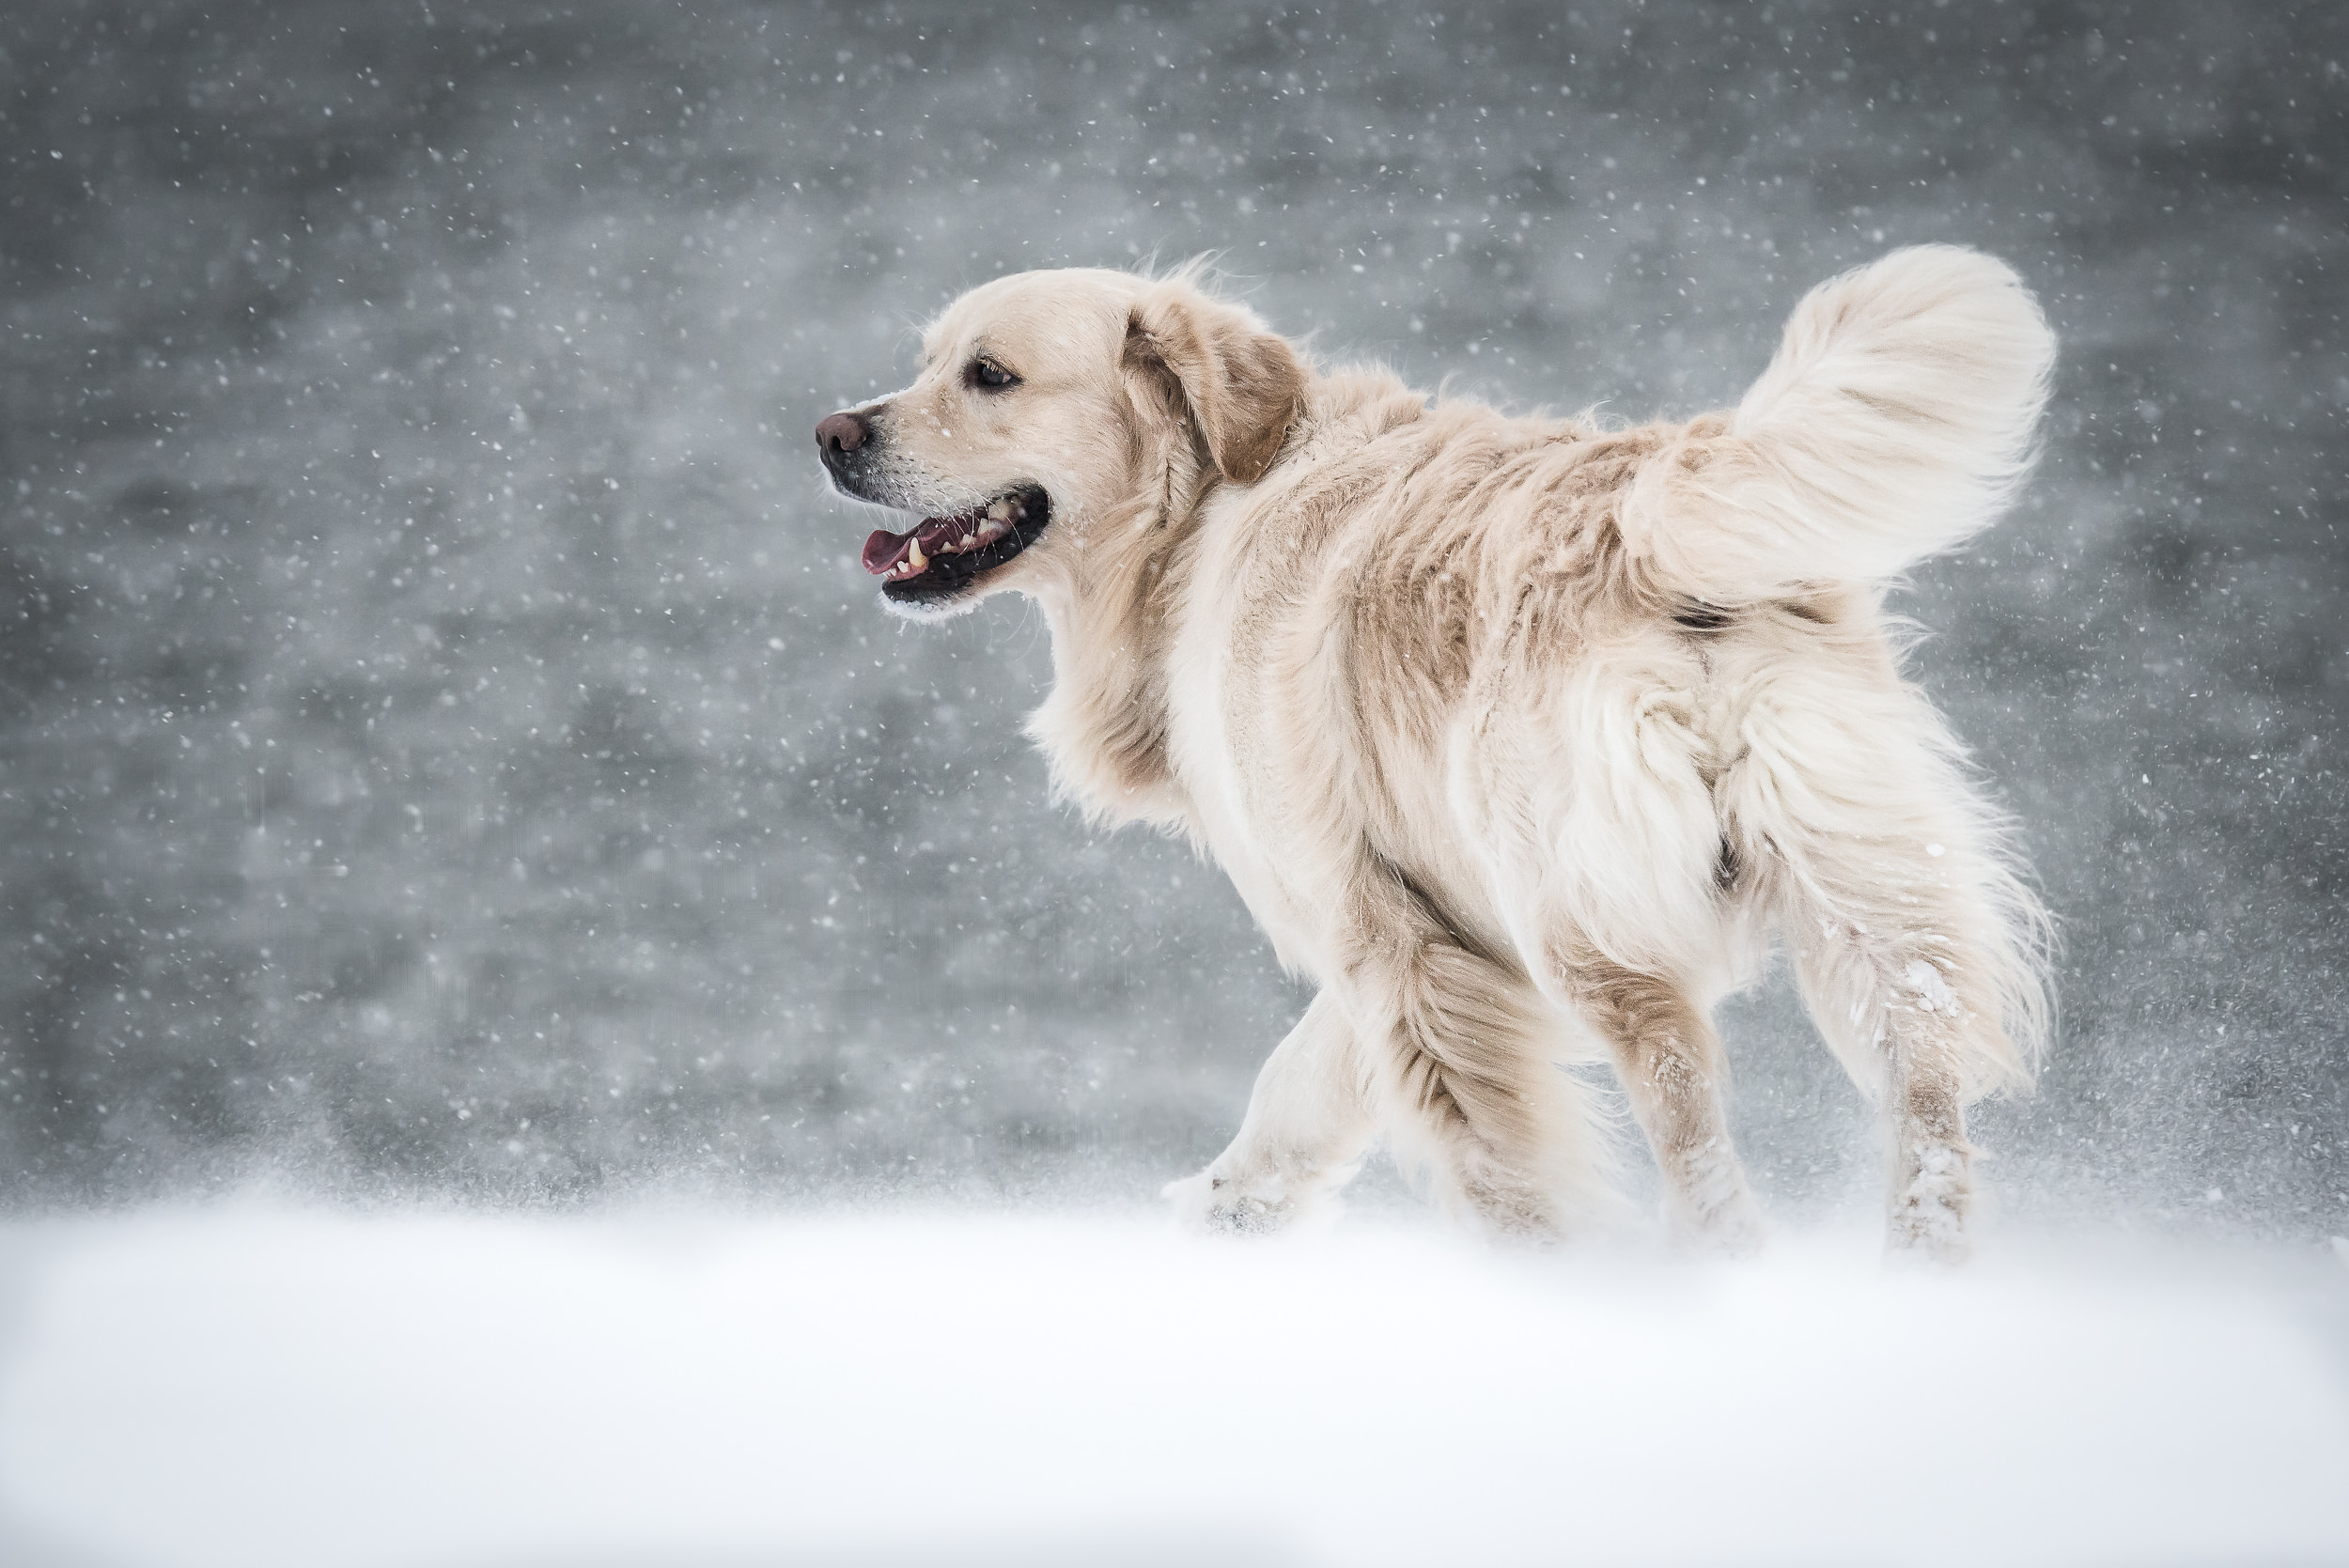 Hundfoto - Golden Retriever